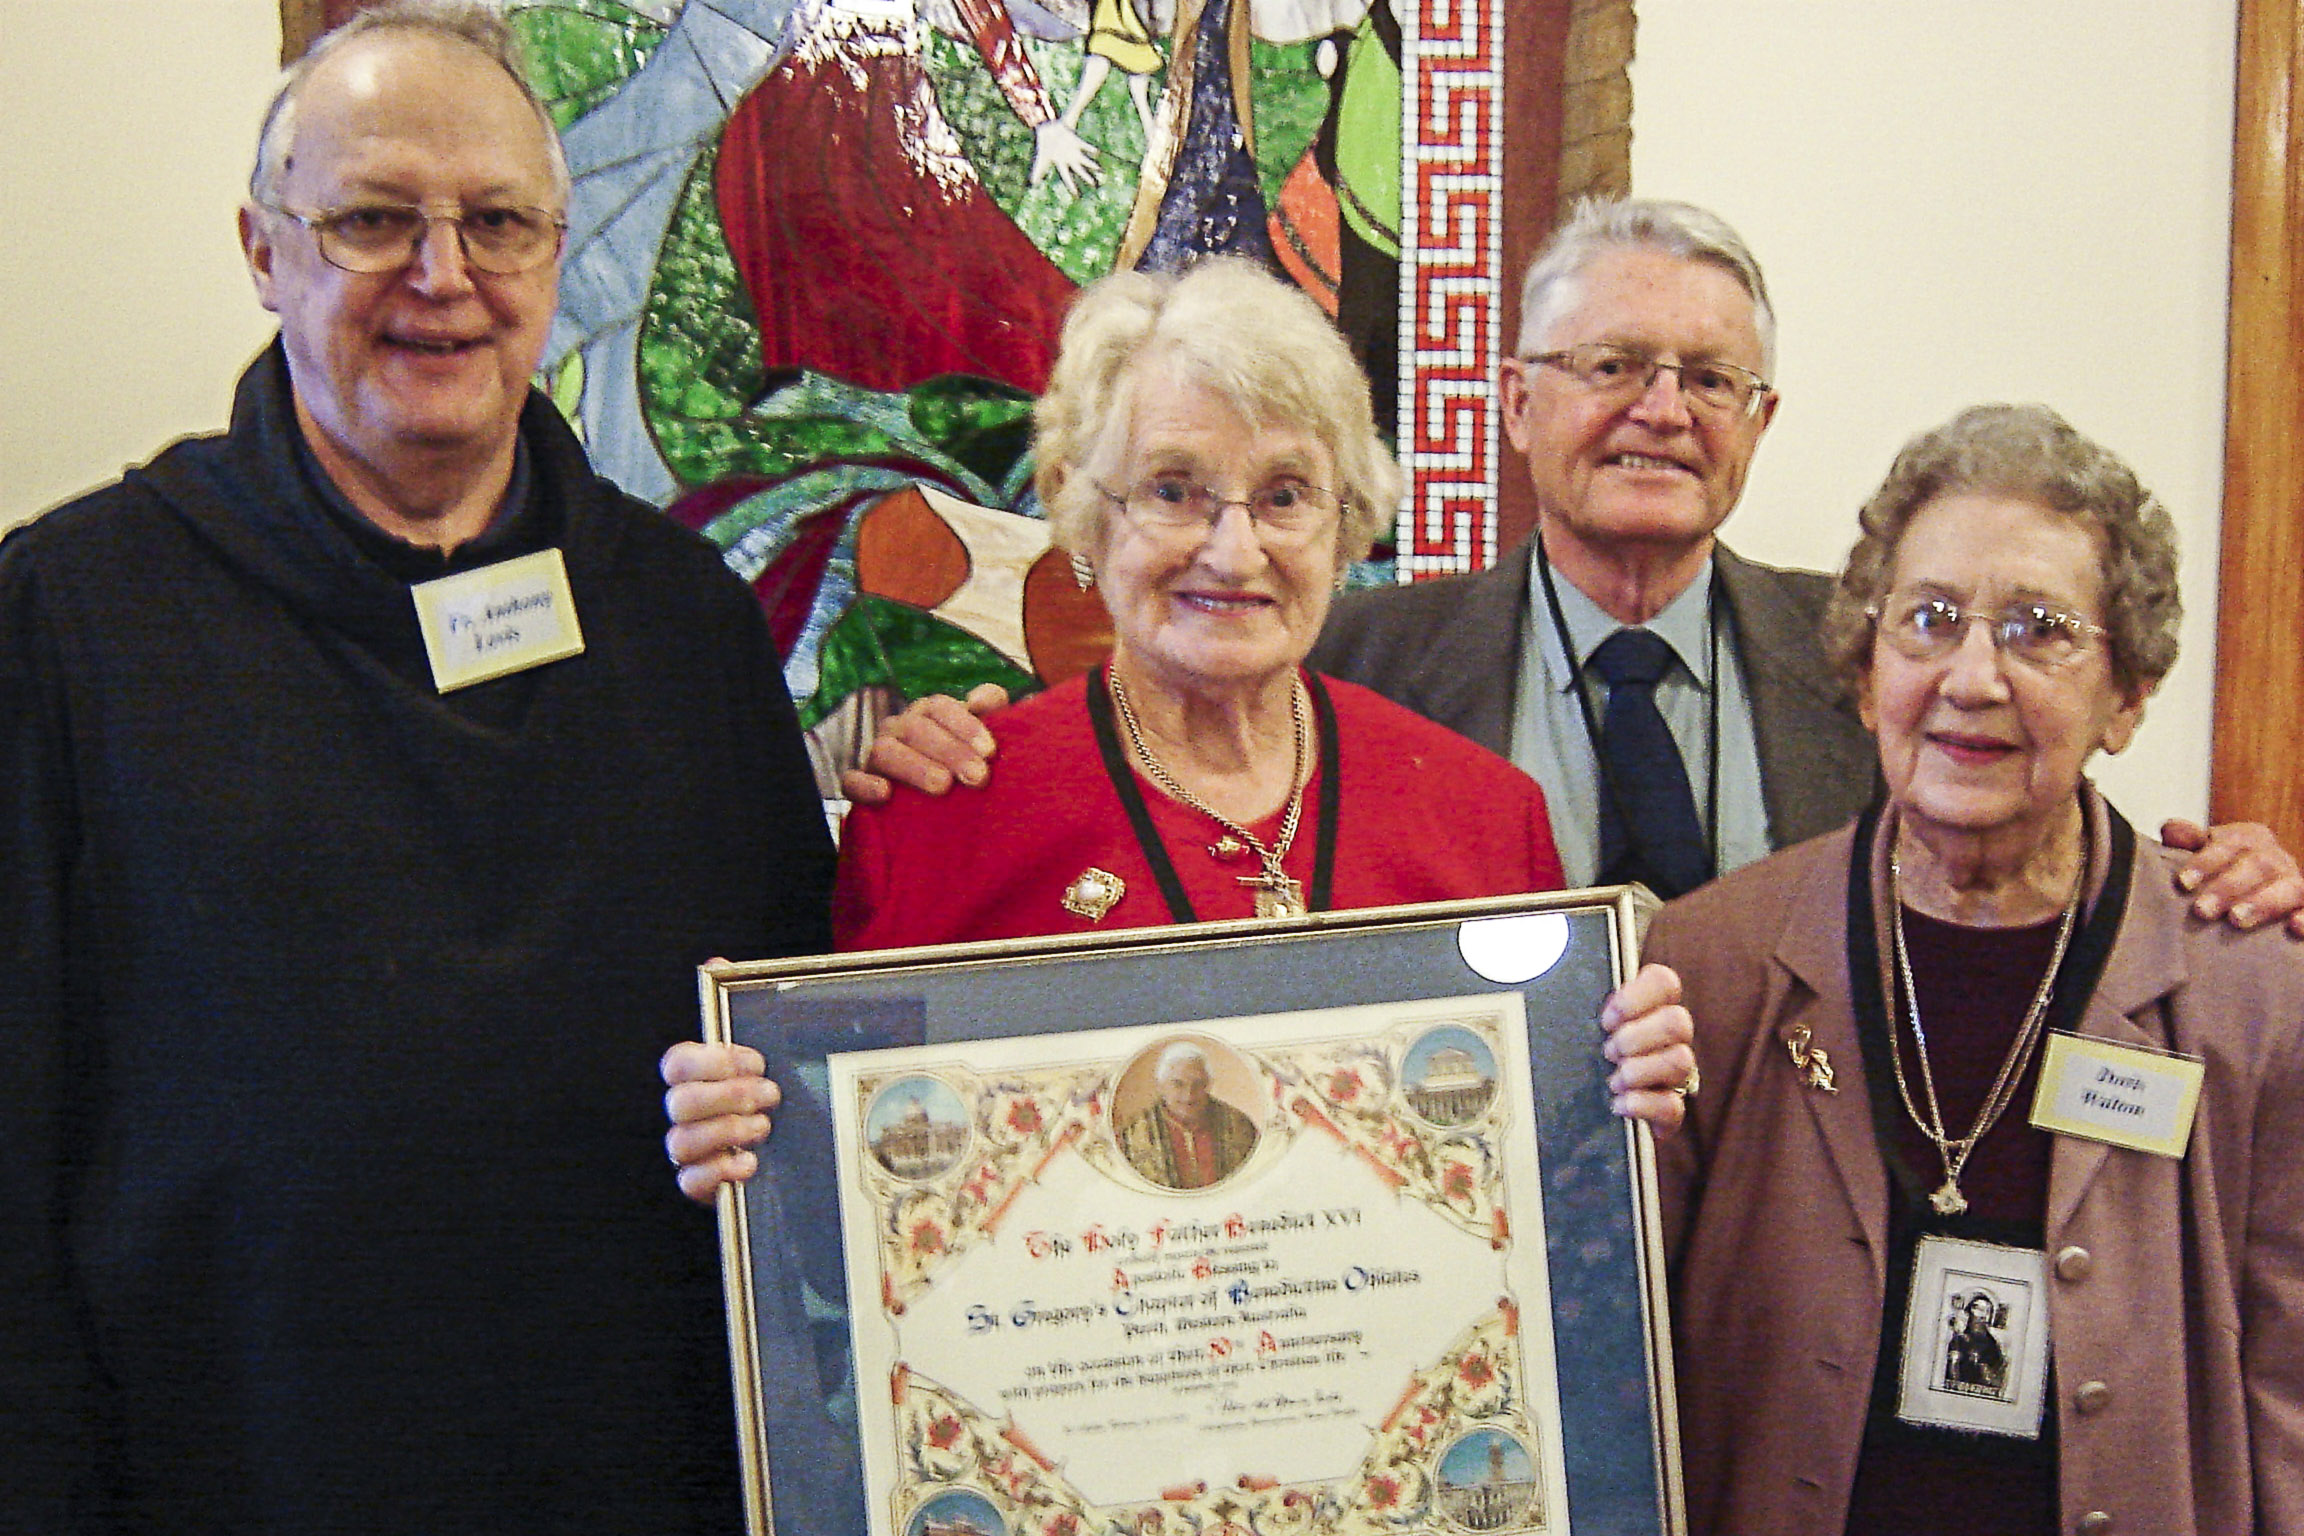 Fr Anthony Lovis OSB, long-time Oblate Adrienne Byrne, Oblate president Tony Smurthwaite and secretary Doris Walton at the 50th anniversary celebration of the founding of the Chapter with an Apostolic Blessing in 2008. Photo: The Record.